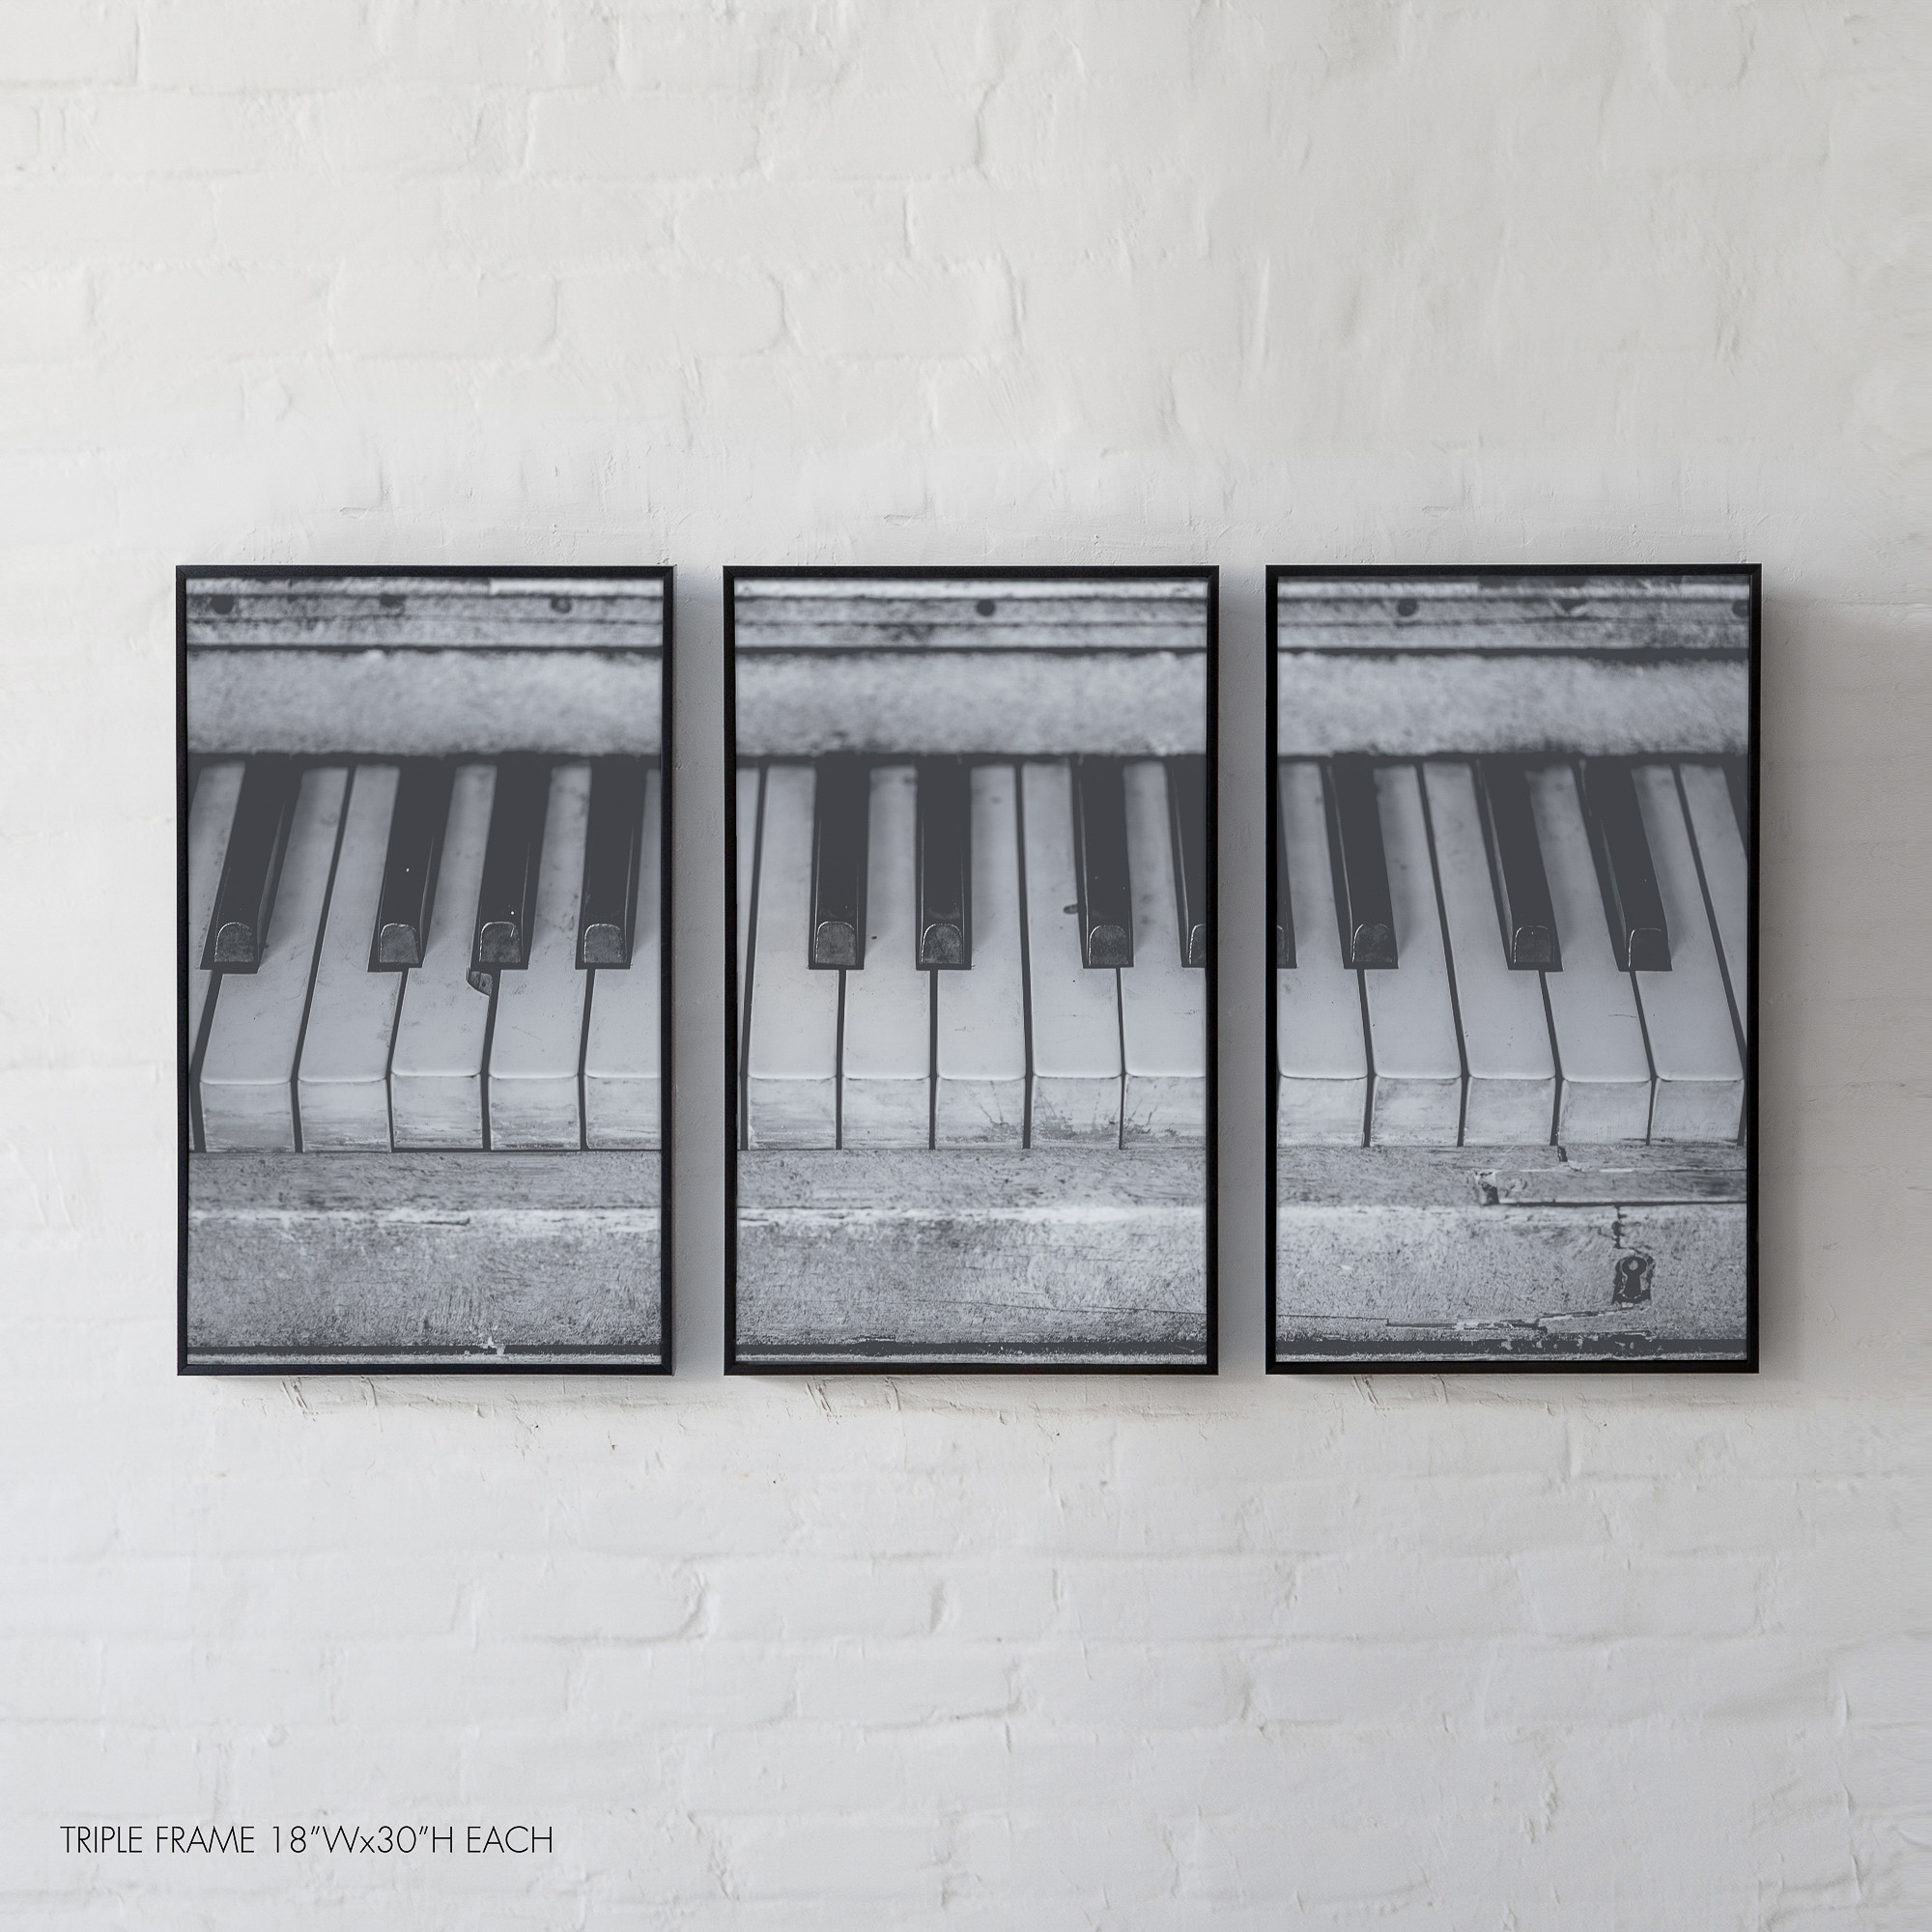 Antique Piano Keys, An achromatic close-up